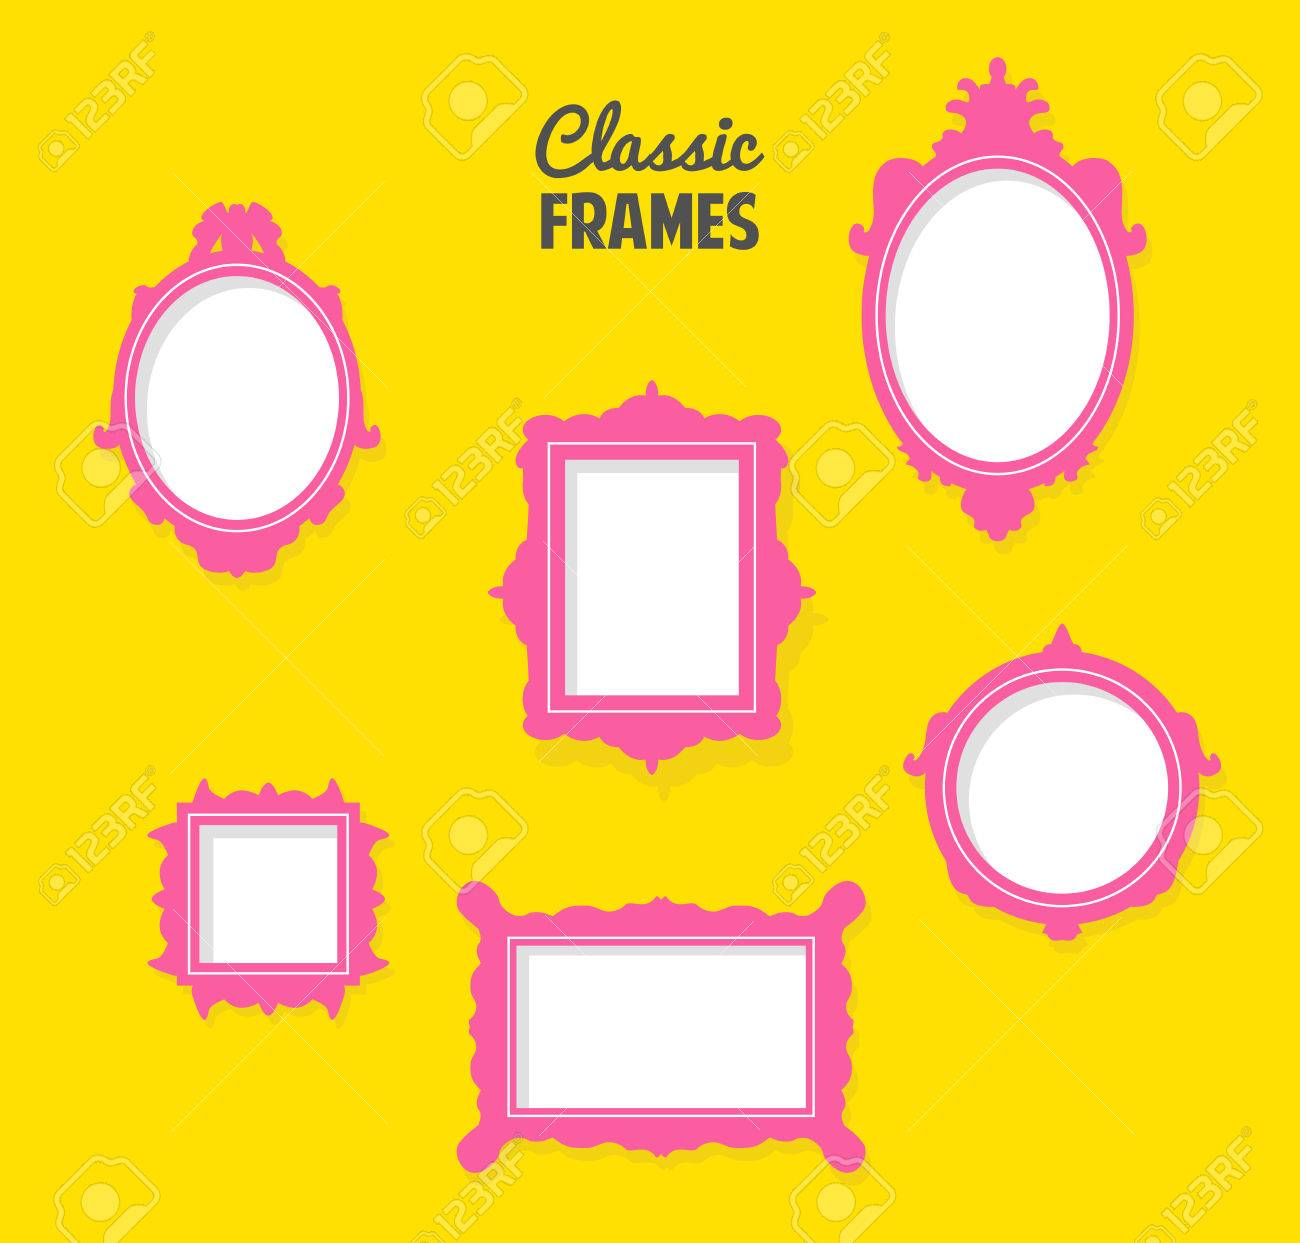 Set Of Classic Frames Silhouettes Royalty Free Cliparts, Vectors ...